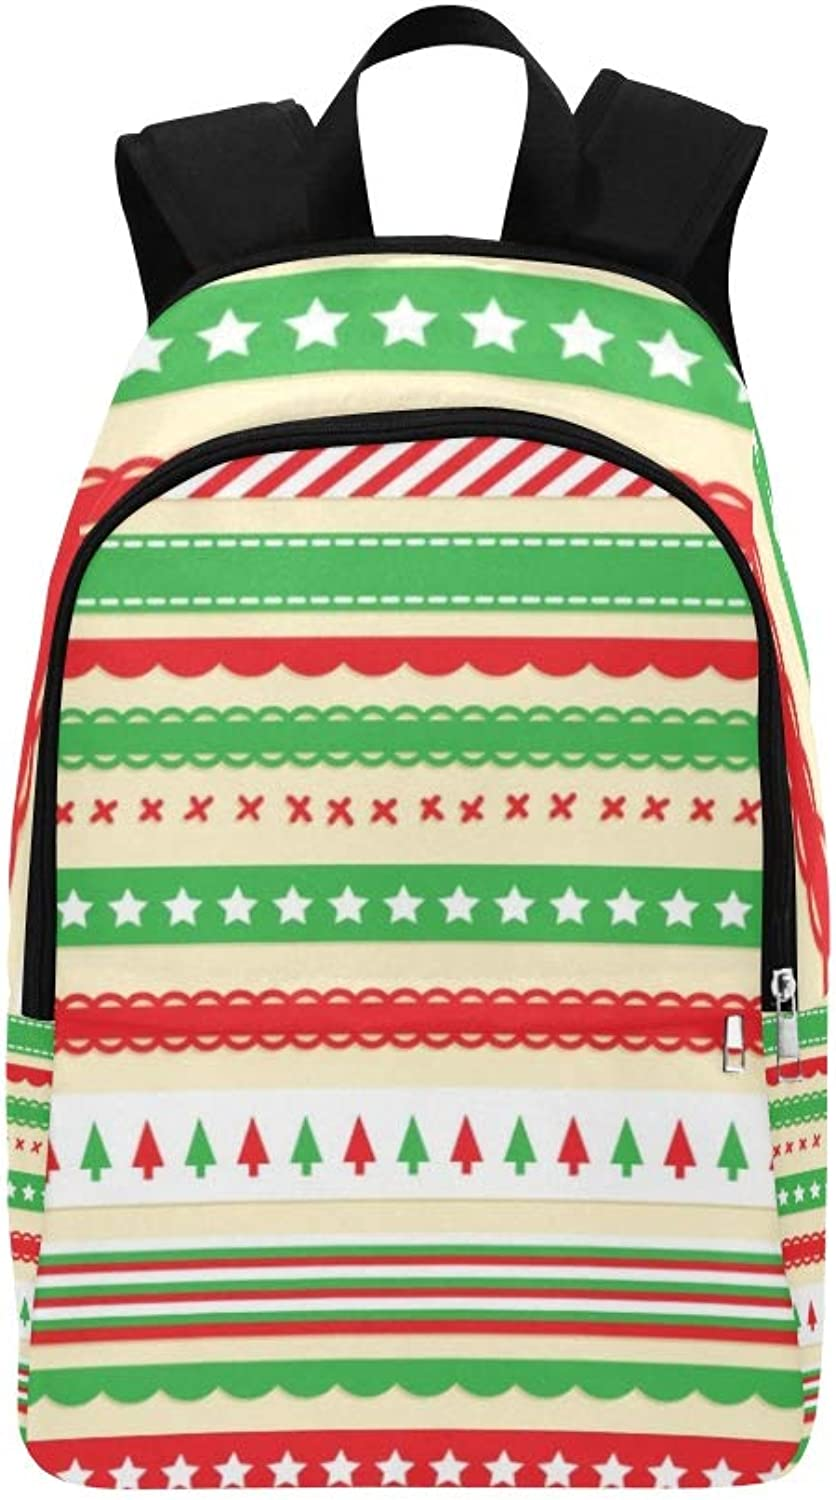 Bright Christmas Ribbon Casual Daypack Travel Bag College School Backpack for Mens and Women